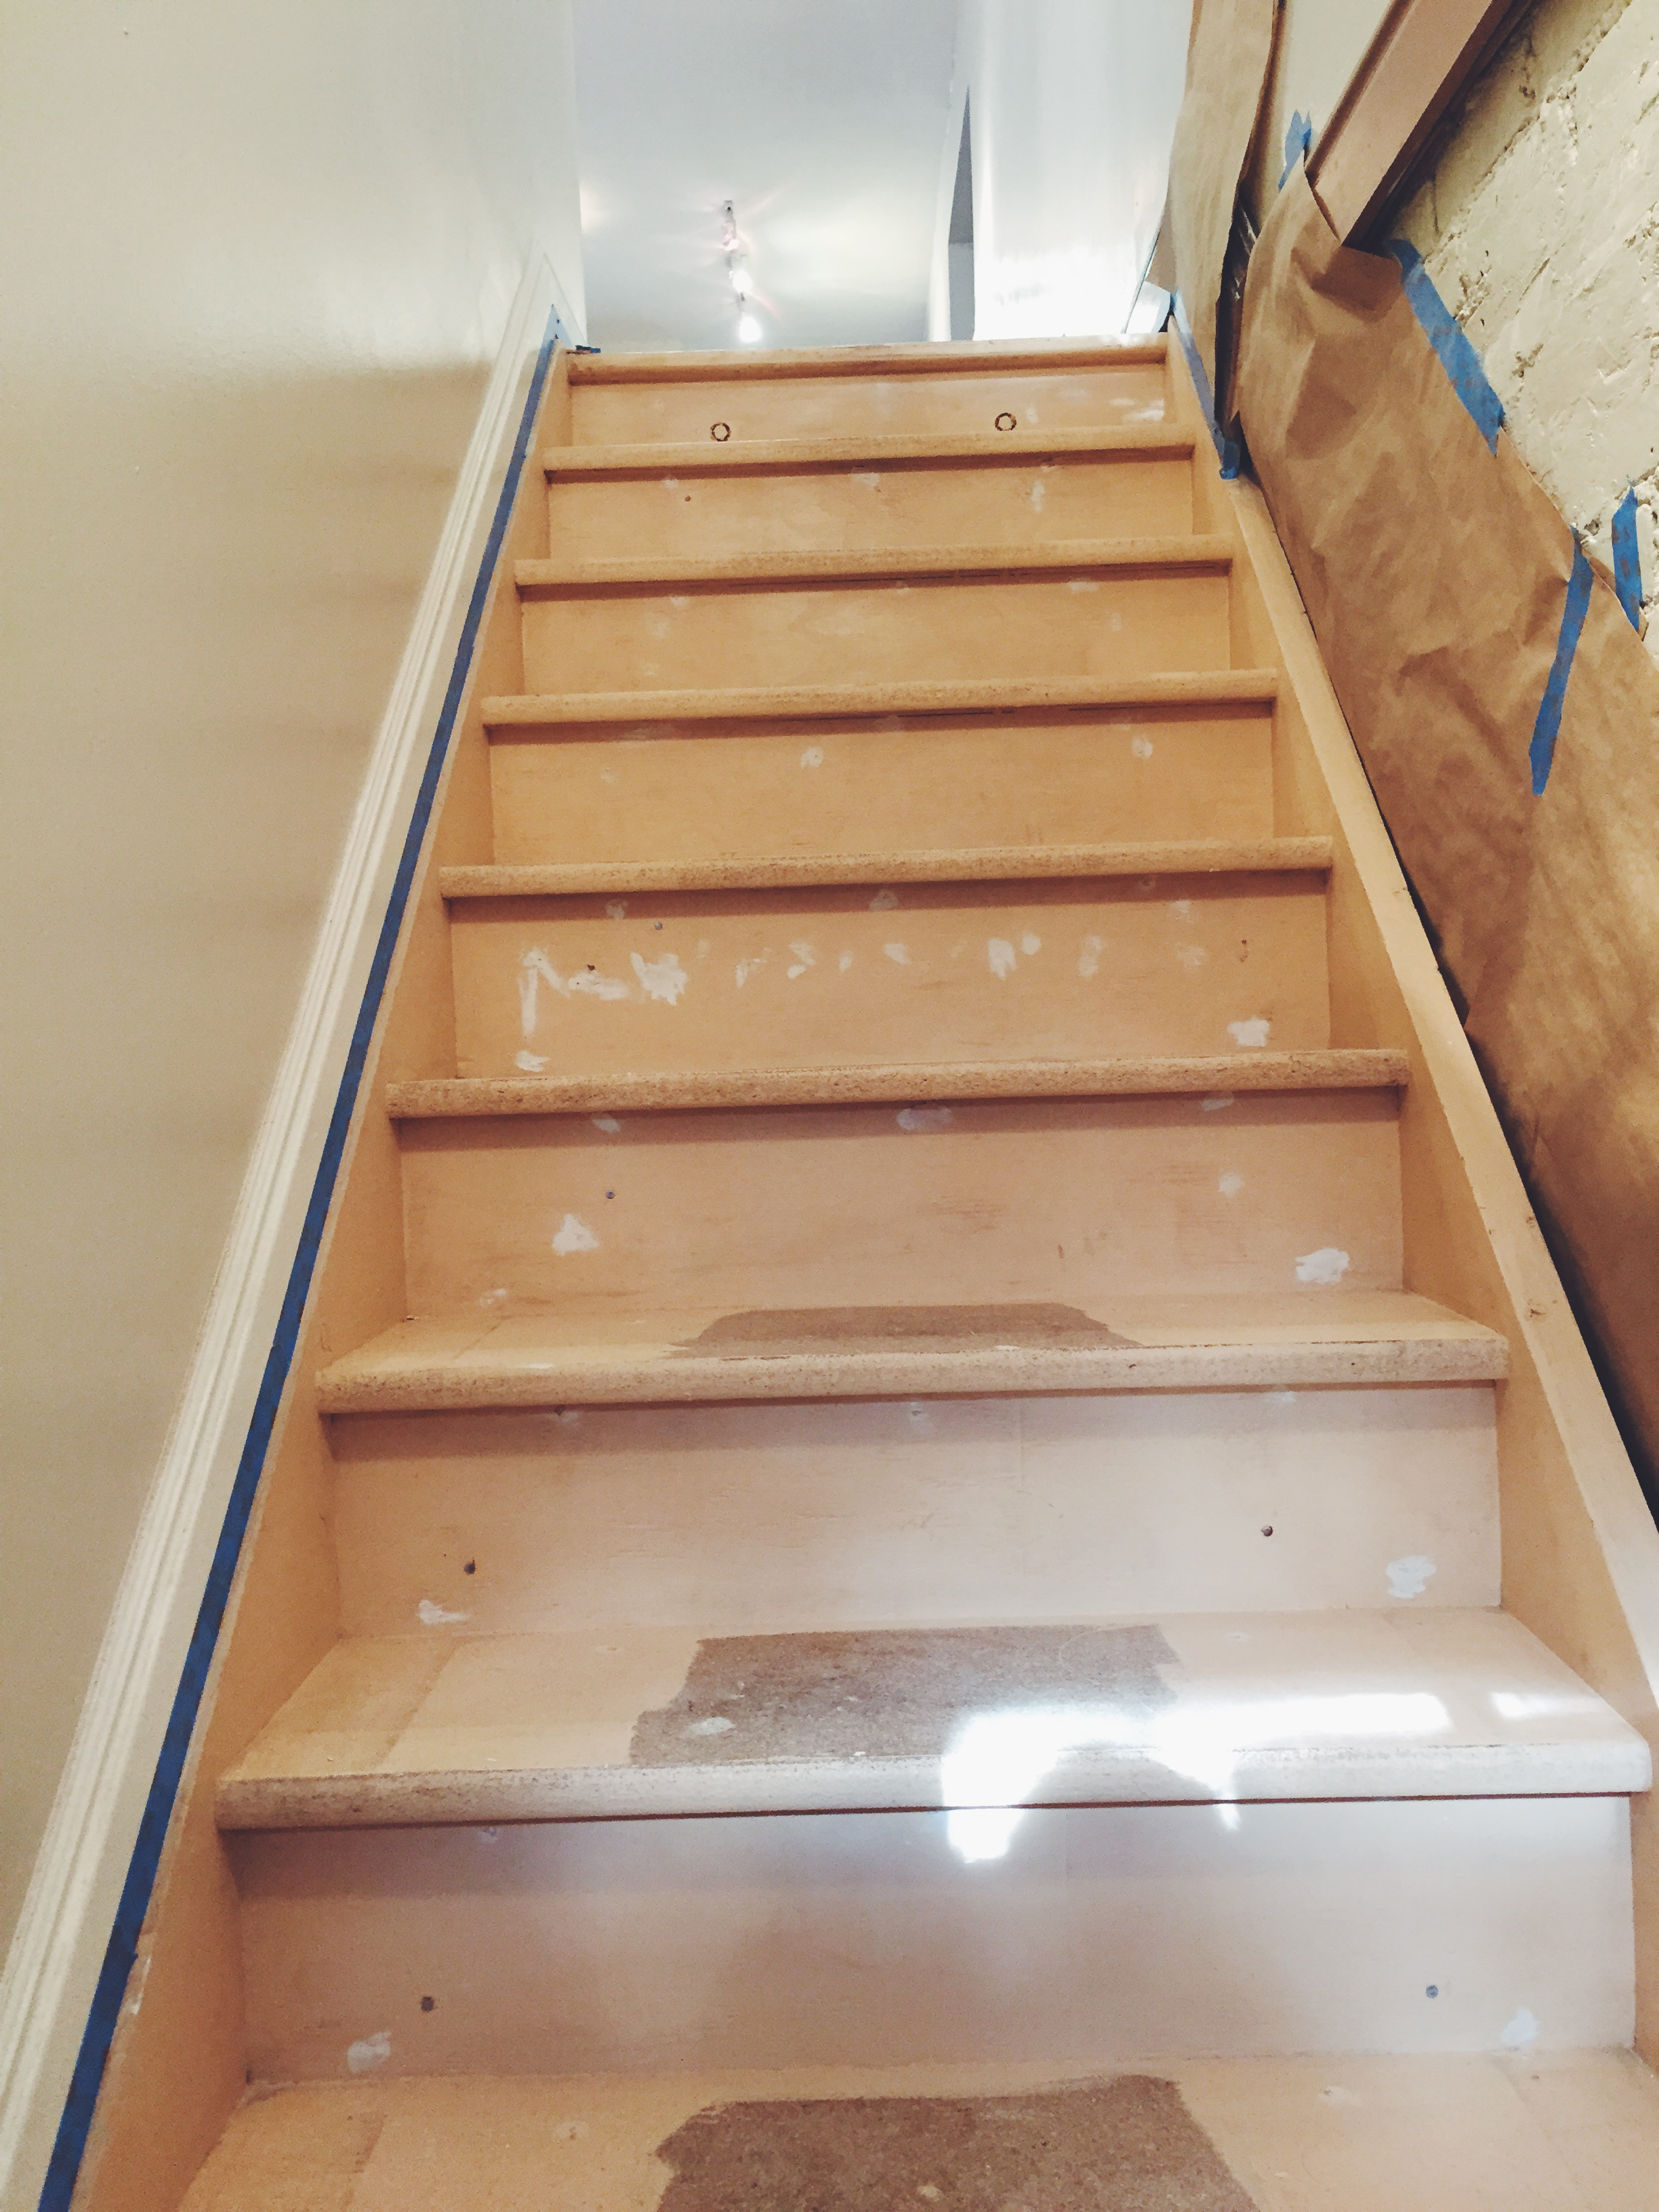 Stairs with wood filler